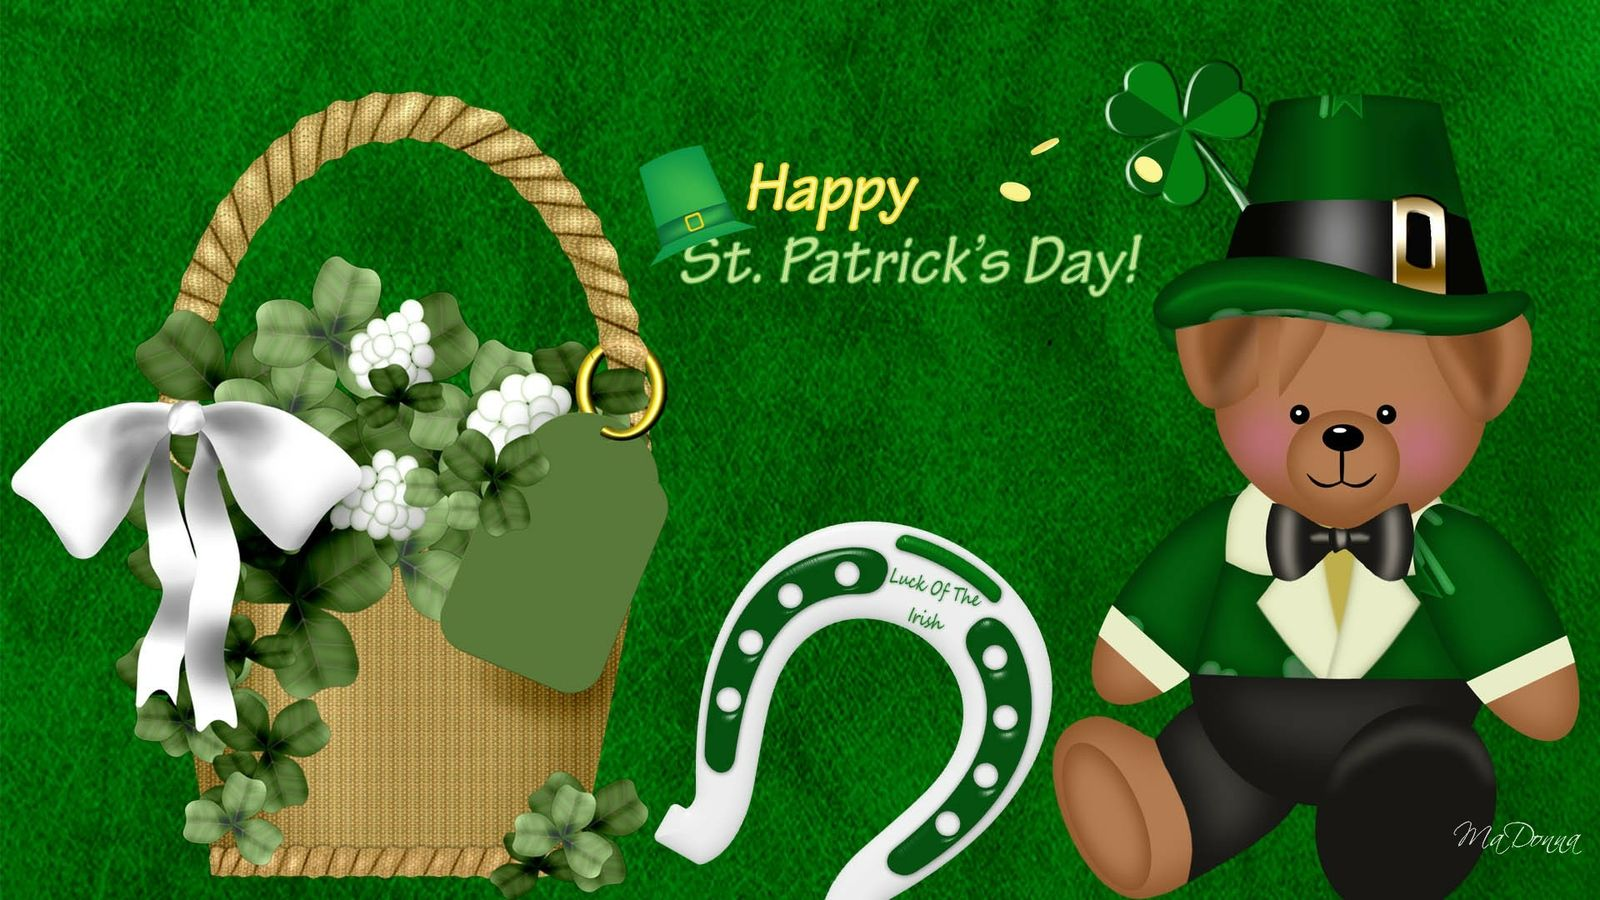 St Patrick S Day Free Images Google Search St Patricks Day